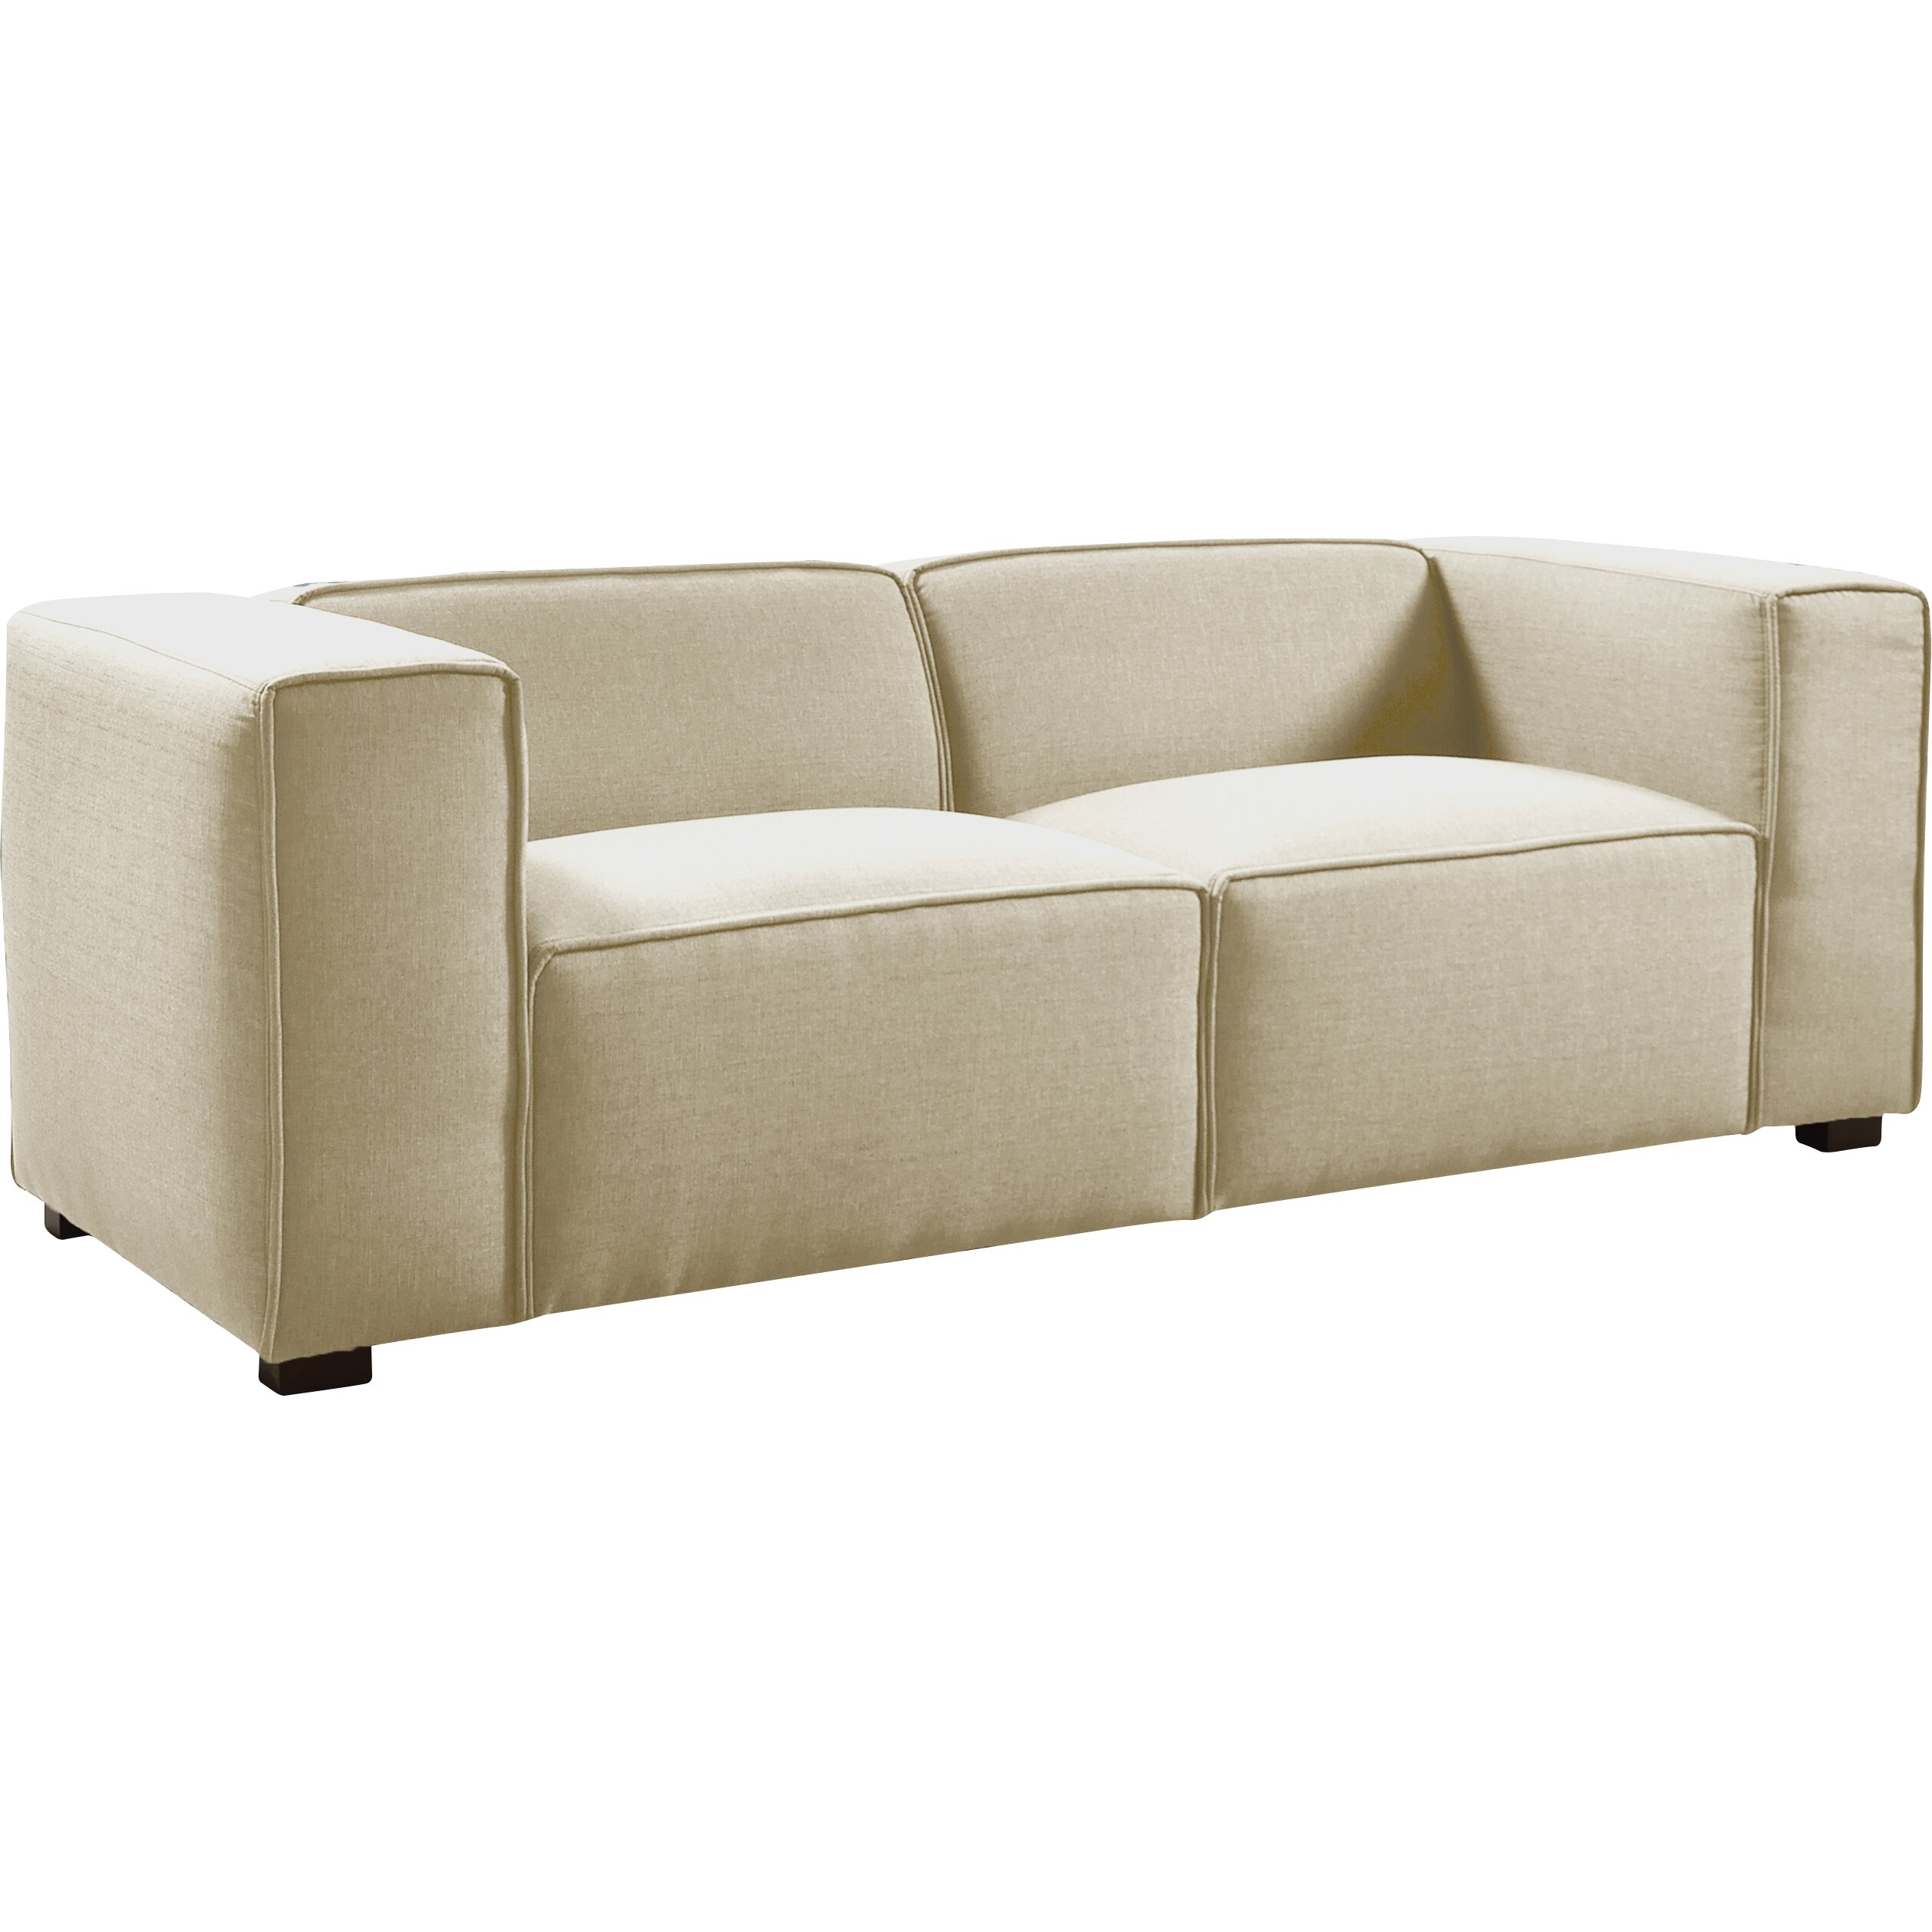 Modern Contemporary Designed Overstuffed Linen Fabric Sofa EXP MHUS